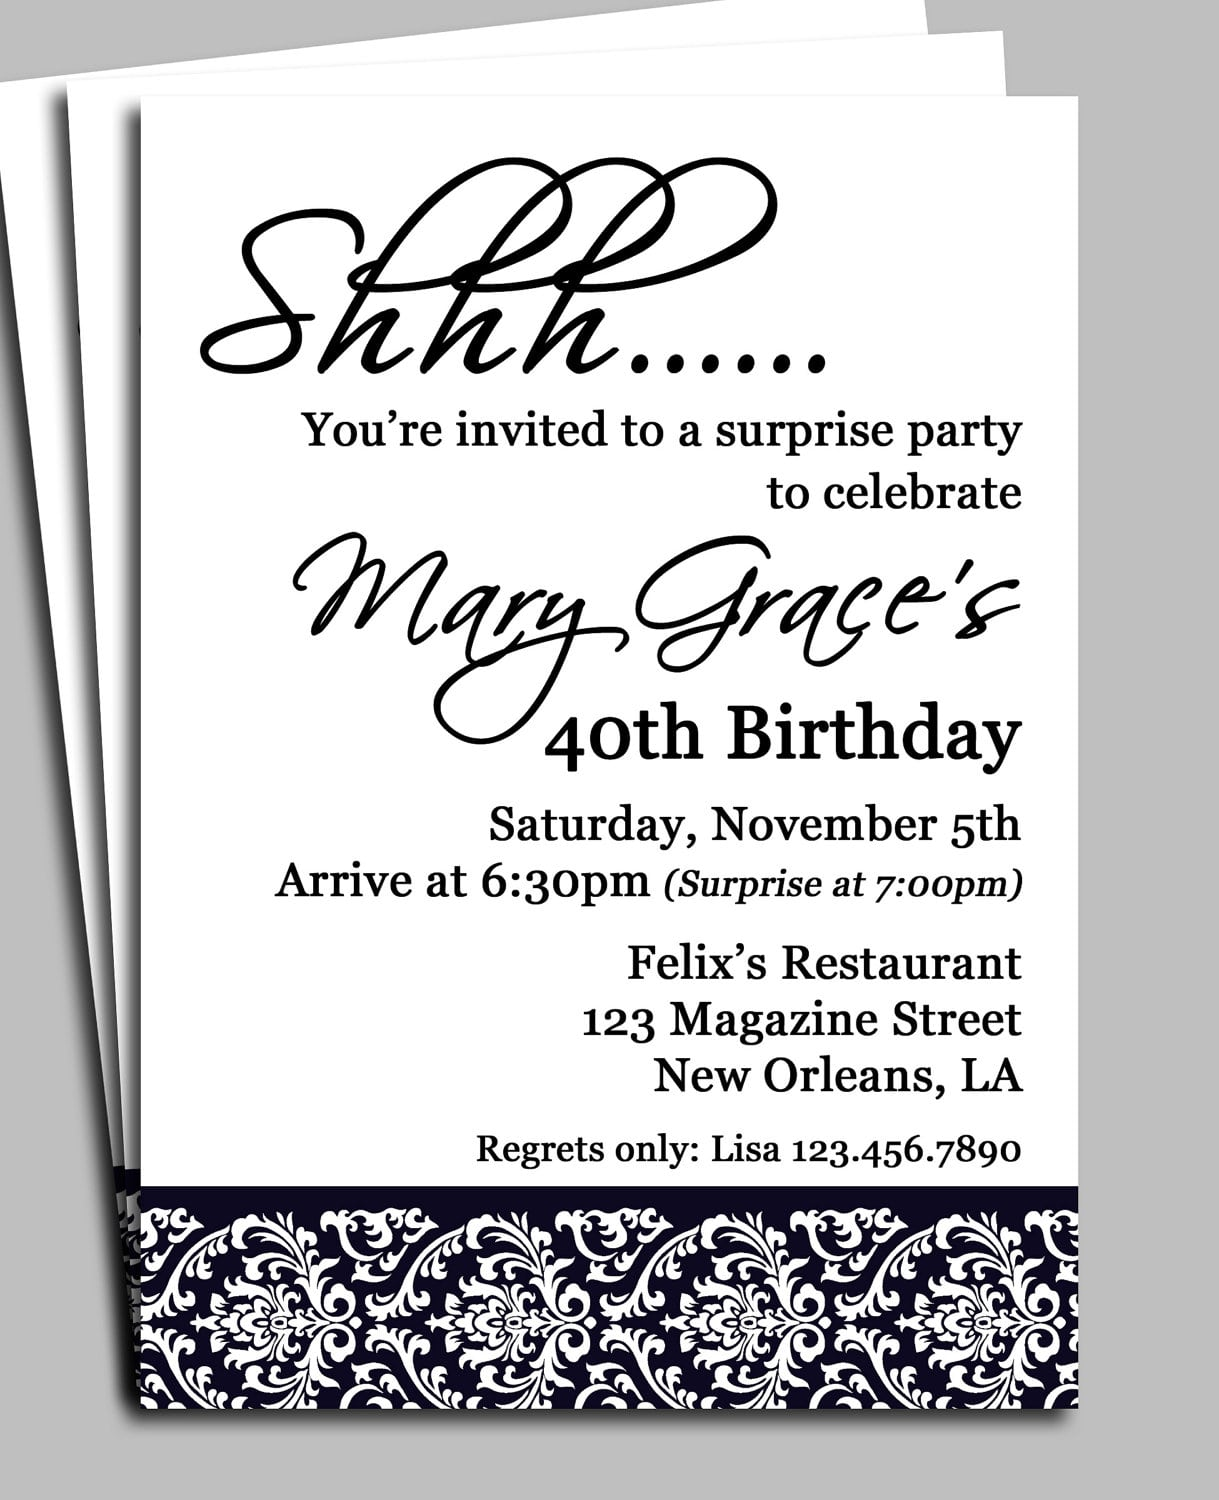 18th Birthday Party Invitation Free Weddings Invitations – 18th Invitation Templates